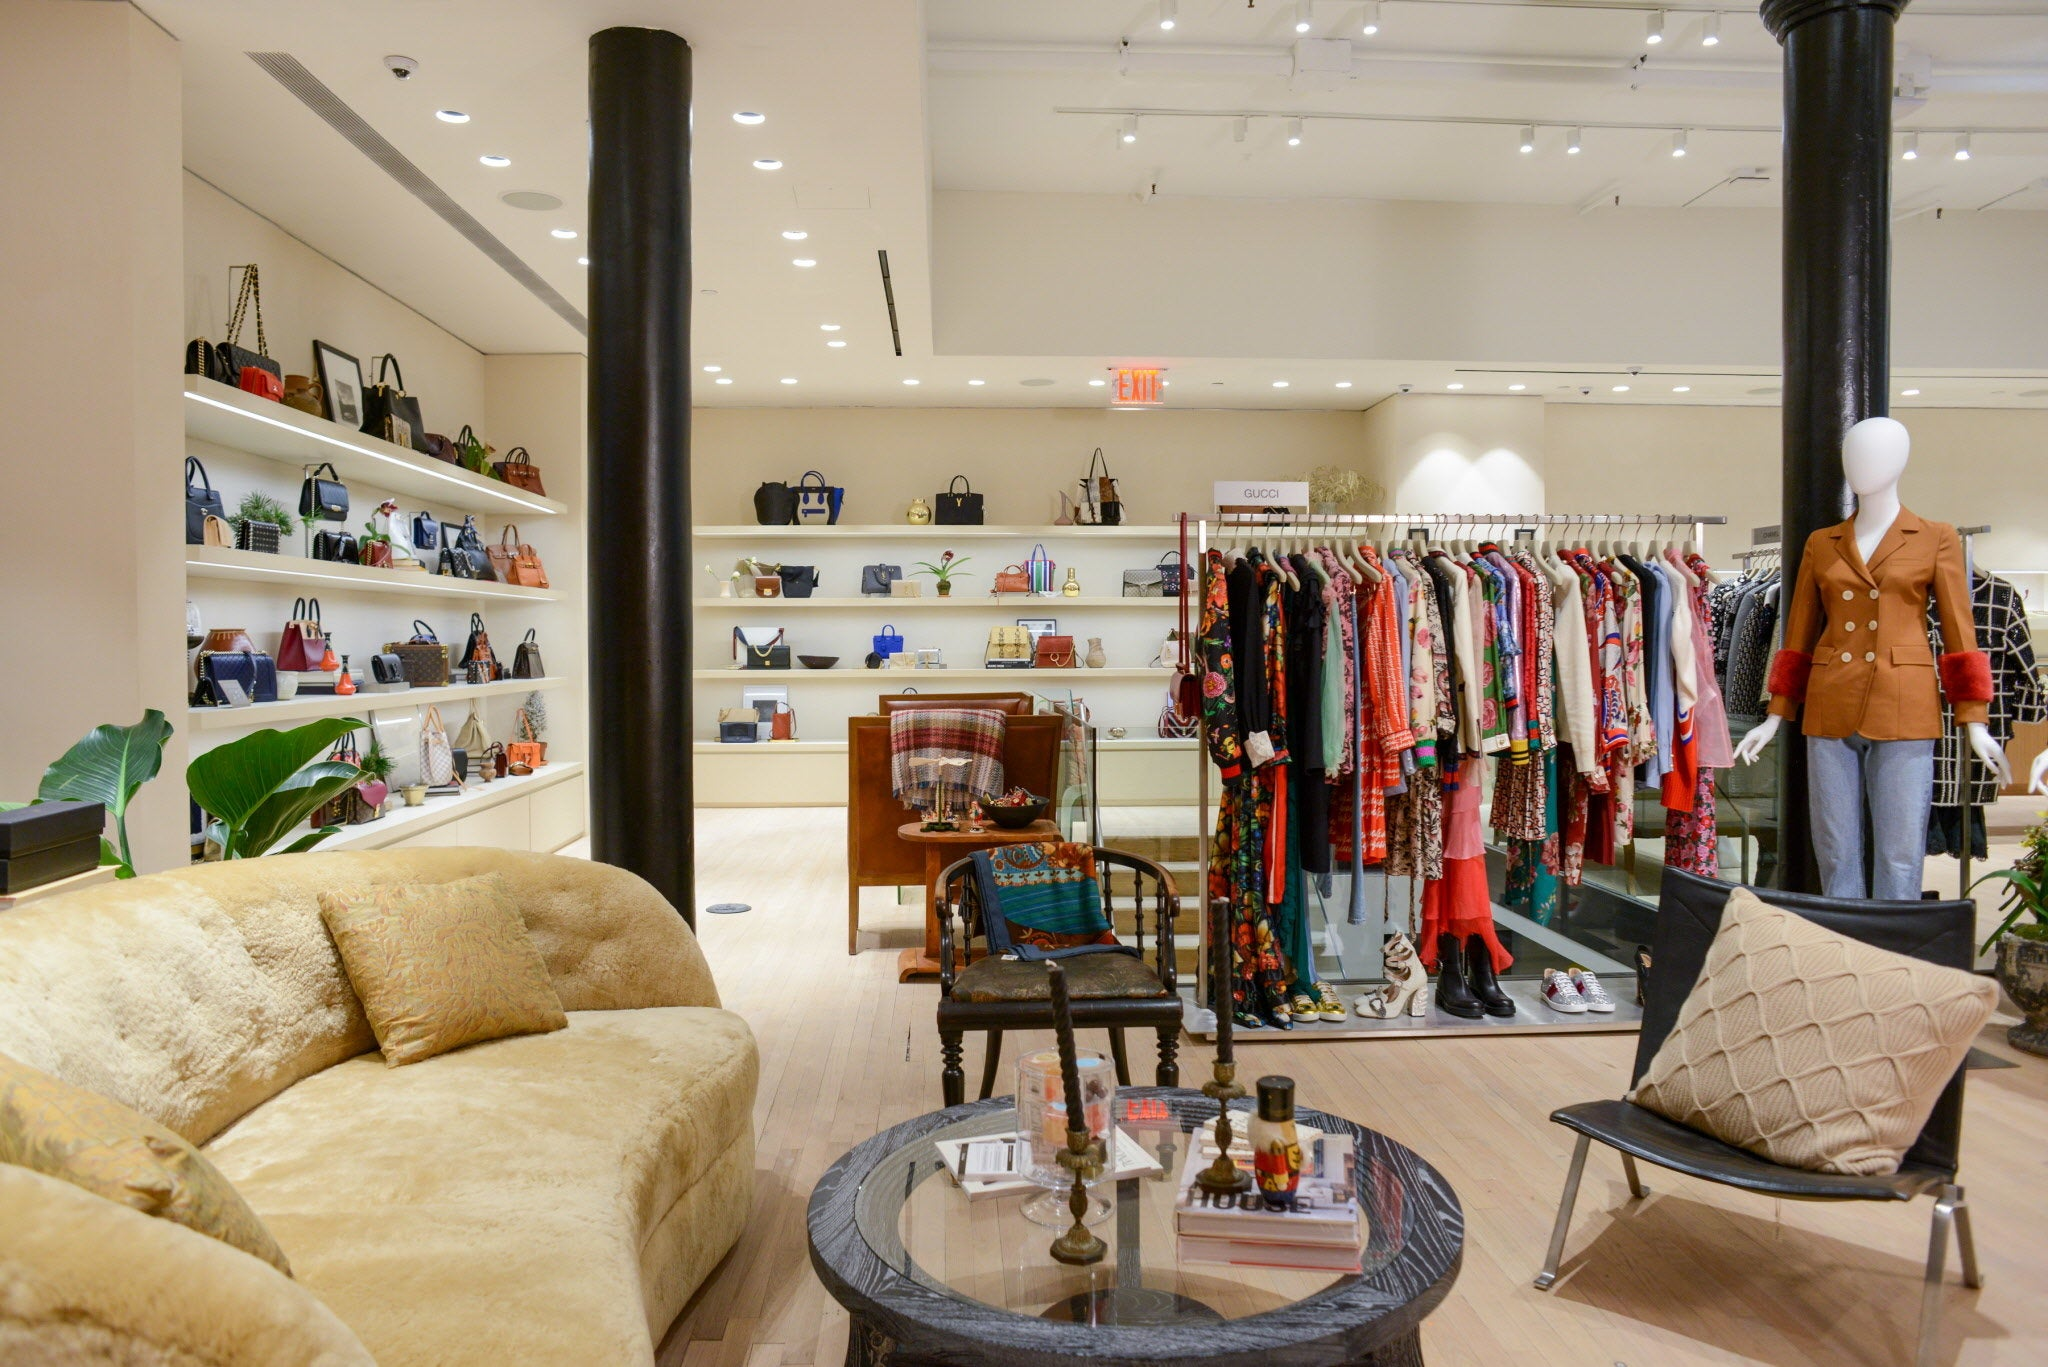 The Real Real Soho, New York Pop-Up - Luxury fashion merchandised in a store setting